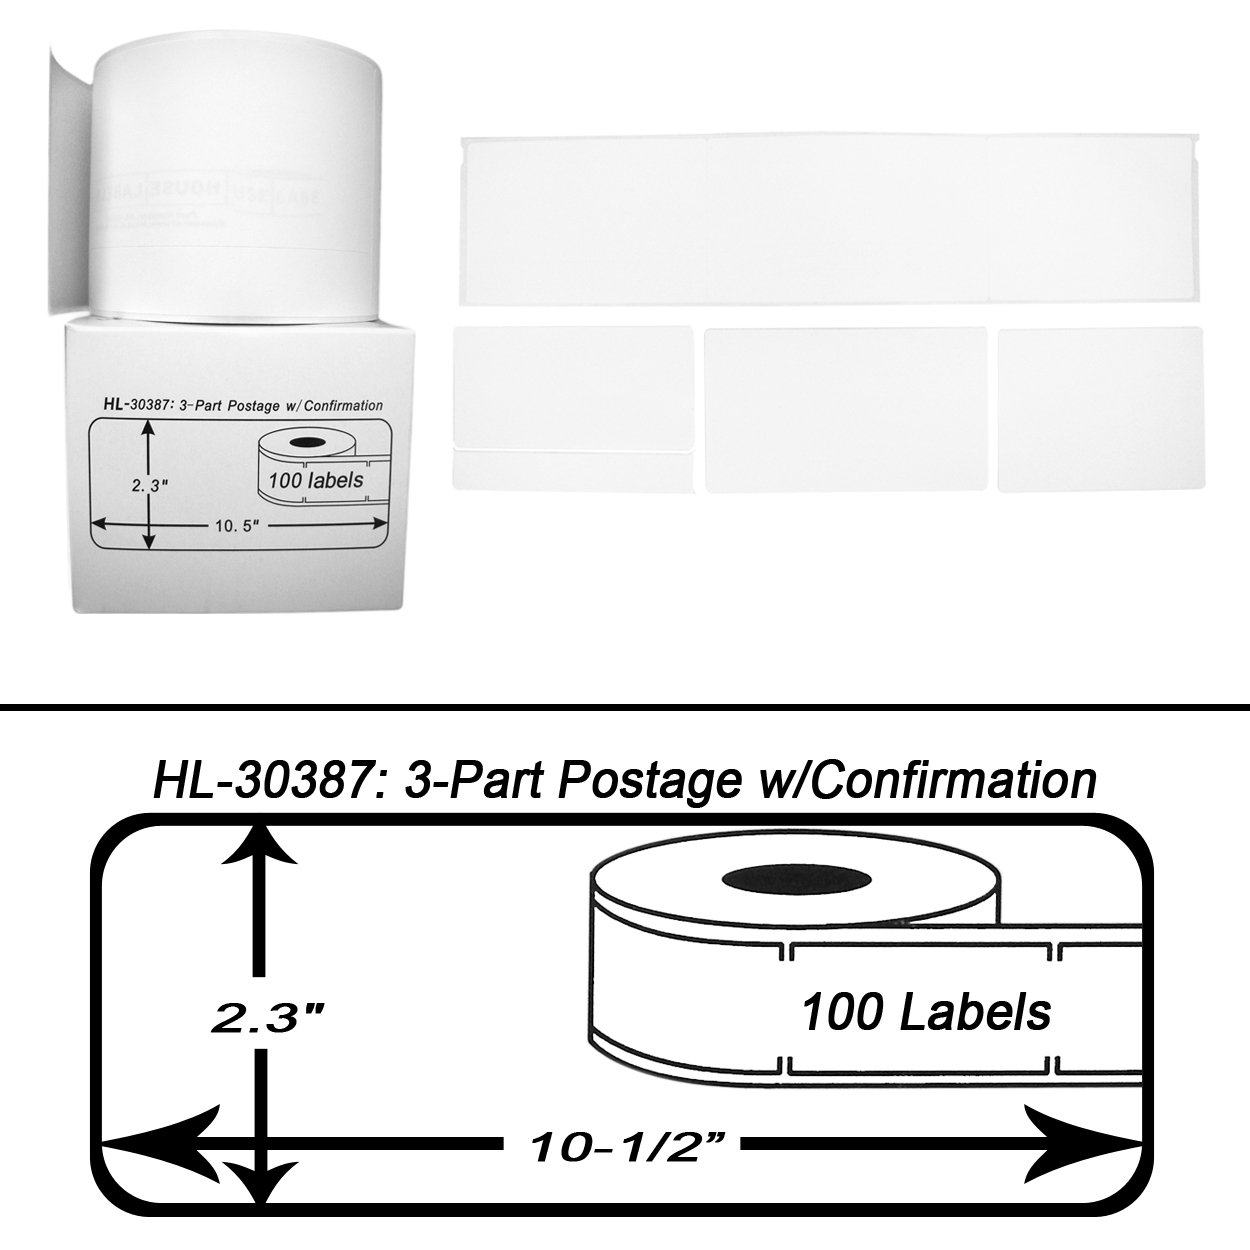 12 Rolls; 100 Labels per Roll of DYMO-Compatible 30387 3-Part Internet Postage Labels (2-5/16'' x 10-1/2'') -- BPA Free! by HouseLabels (Image #2)